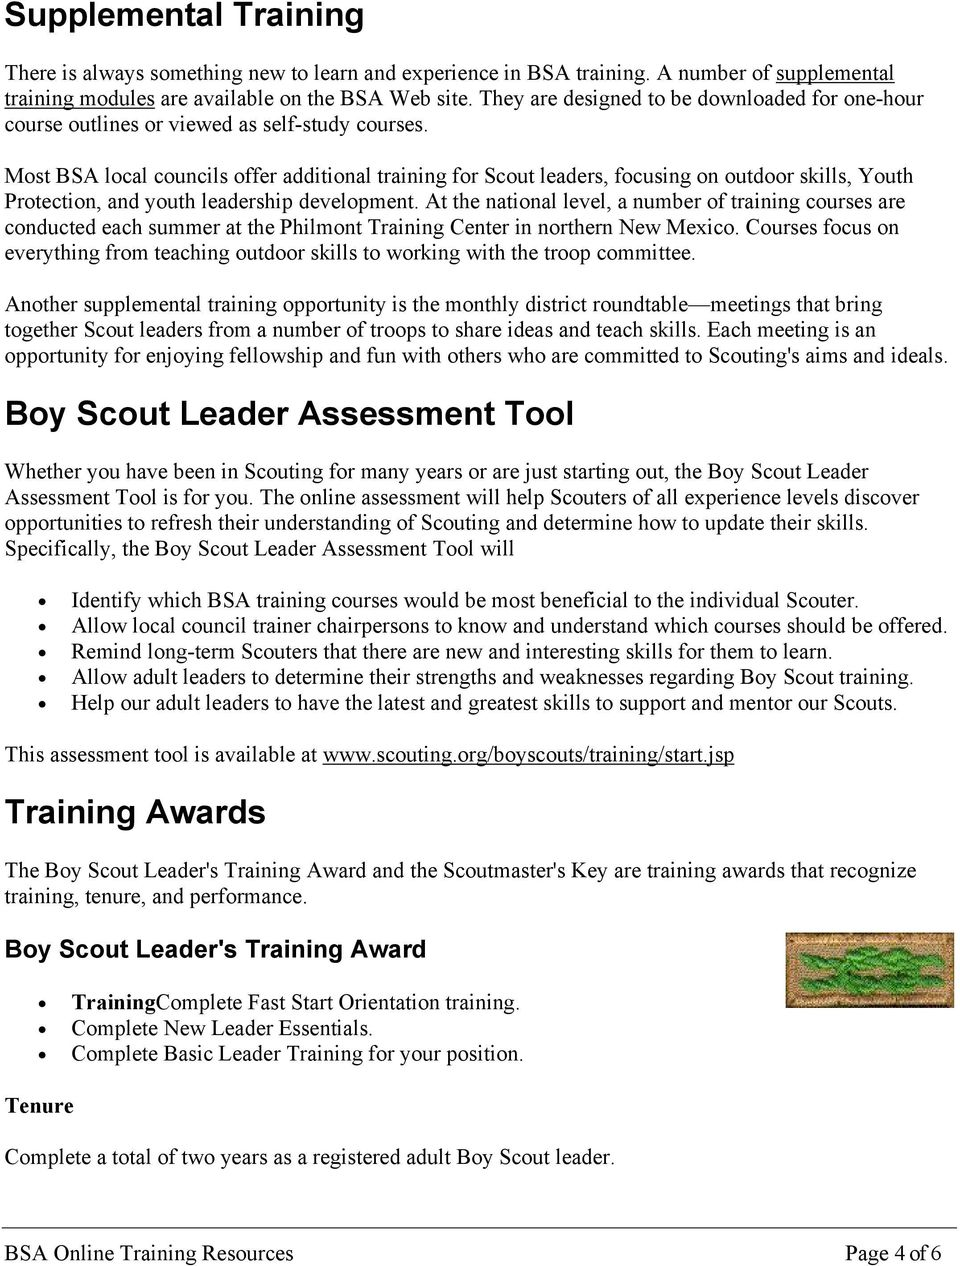 Most BSA local councils offer additional training for Scout leaders, focusing on outdoor skills, Youth Protection, and youth leadership development.